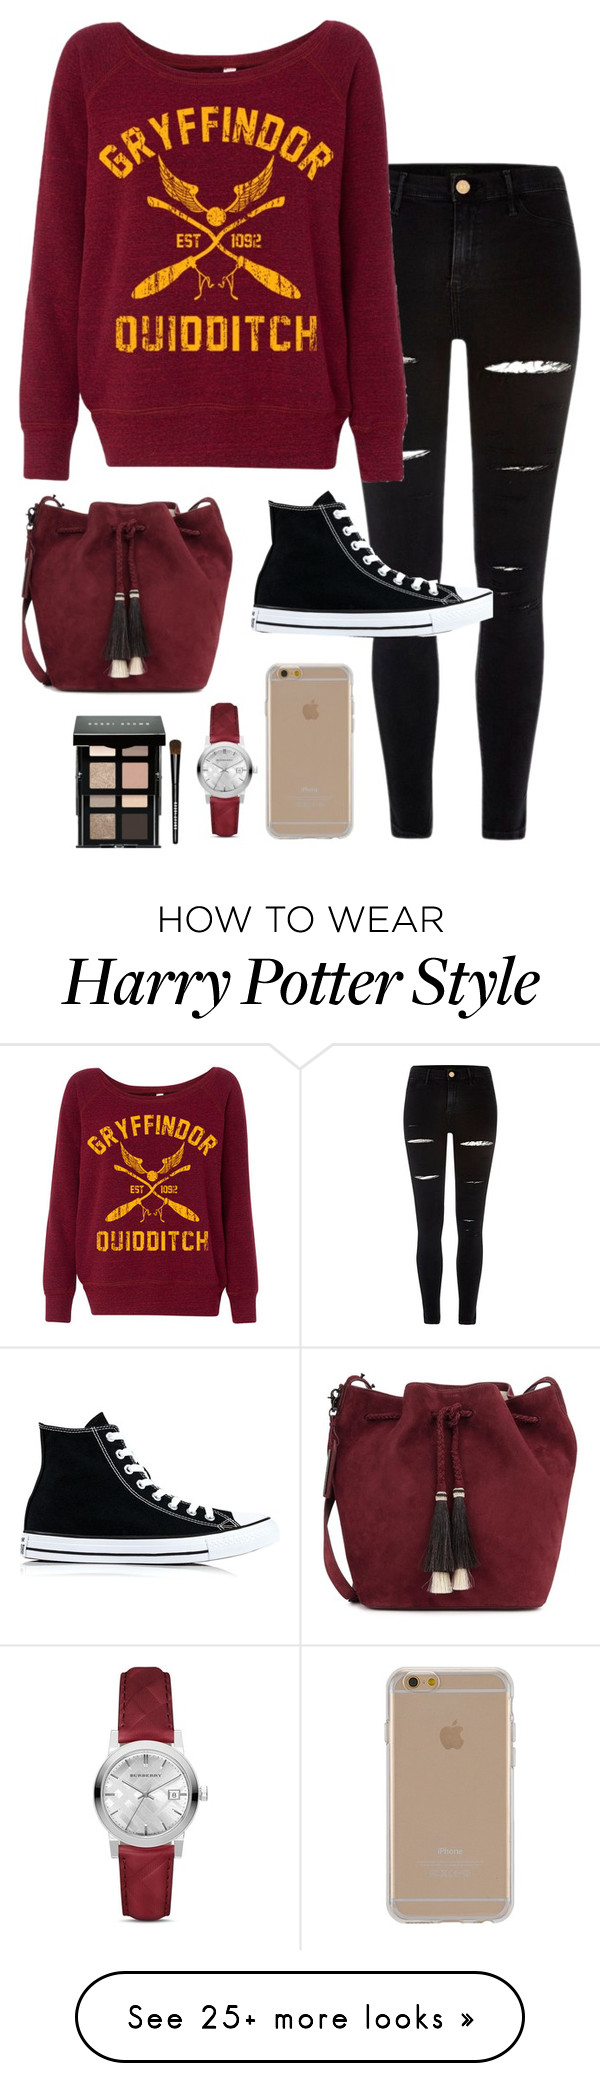 """H"" by taylahjordan on Polyvore featuring River Island, Converse, Loeffler Randall, Agent 18, Burberry and Bobbi Brown Cosmetics"